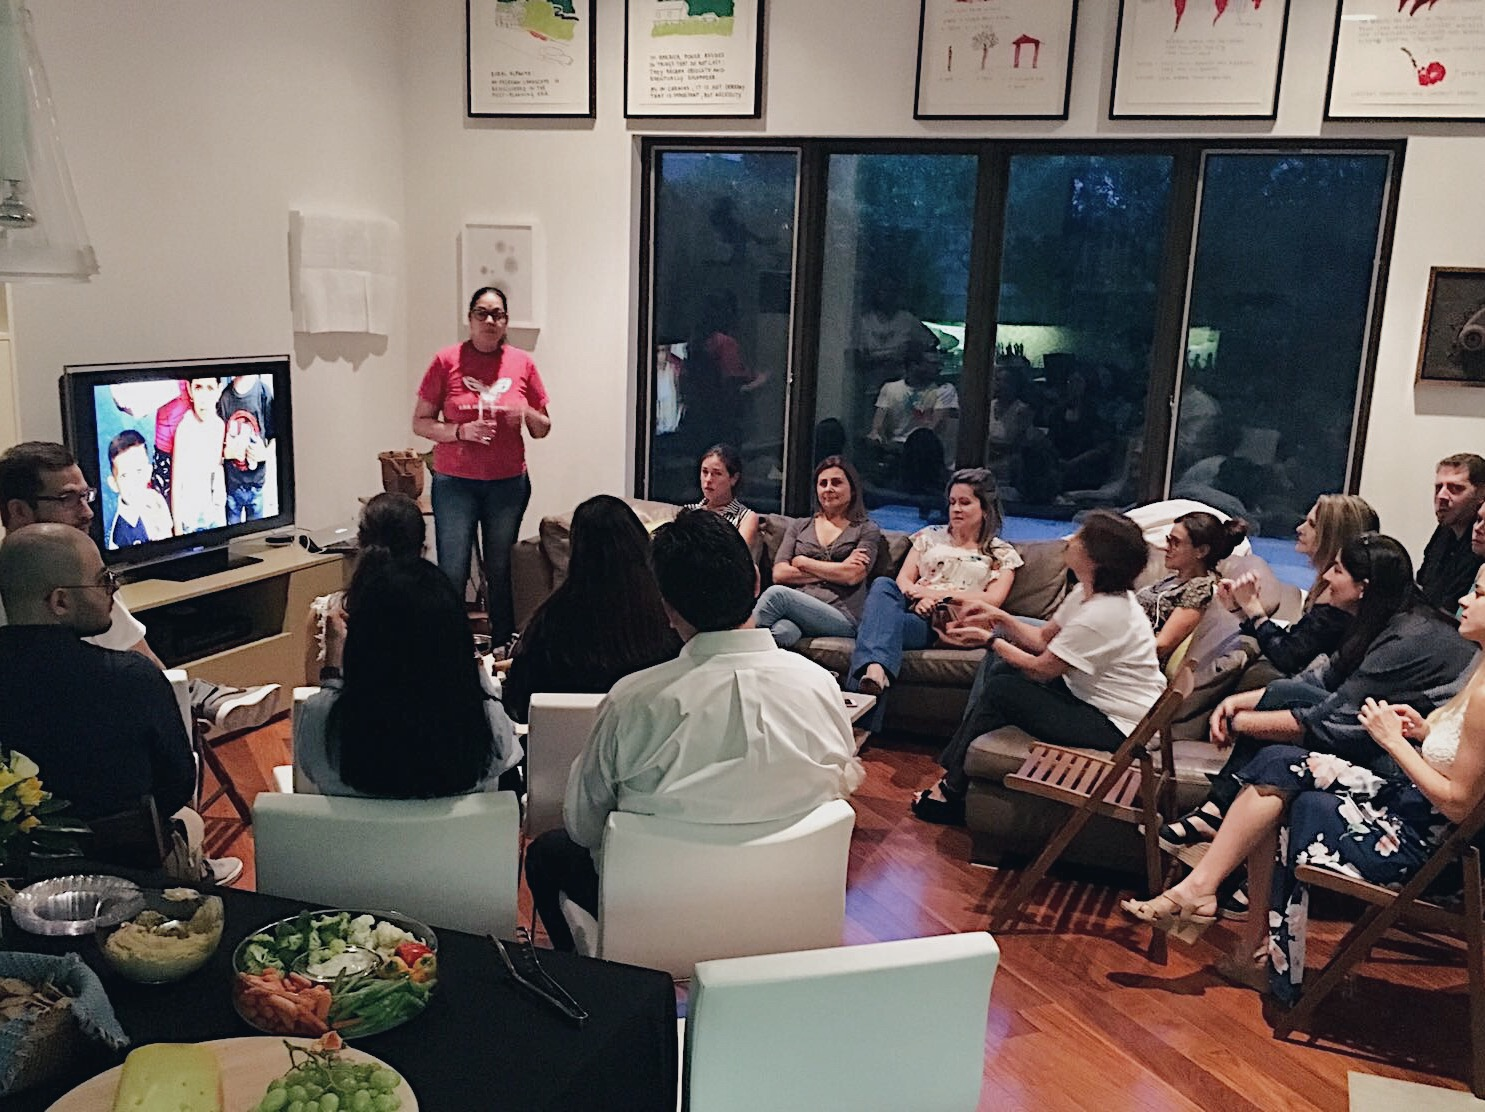 Encuentro con Maria Alejandra Ramos - Around 45 of our supporters came to meet and hear the story of Maria Alejandra Ramos, the founder of our primary partner SOS Somos Portuguesa. It was quite an inspiring experience to hear the stories firsthand of their work with children in Portuguesa.